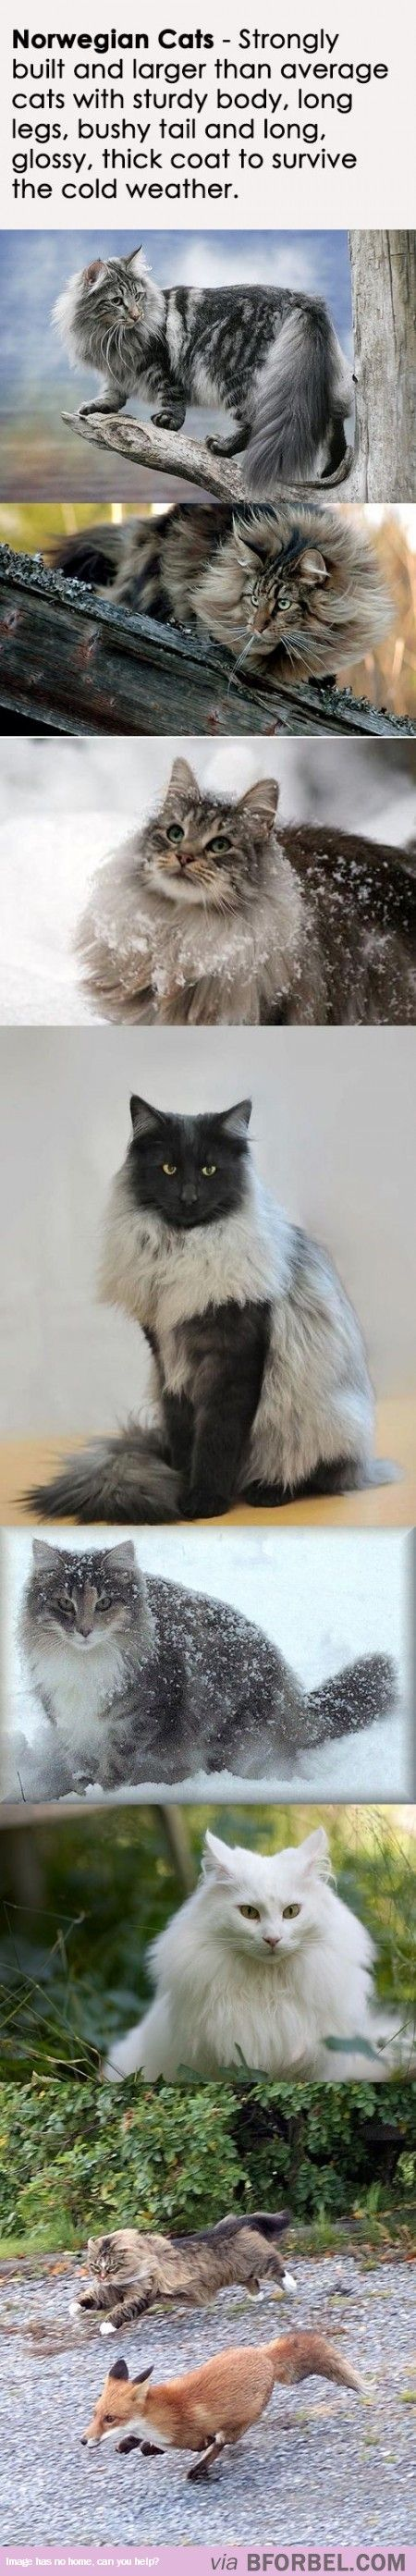 Best Norwegian Cat Ideas On Pinterest Pretty Cats Norwegian - 25 of the fluffiest cats ever